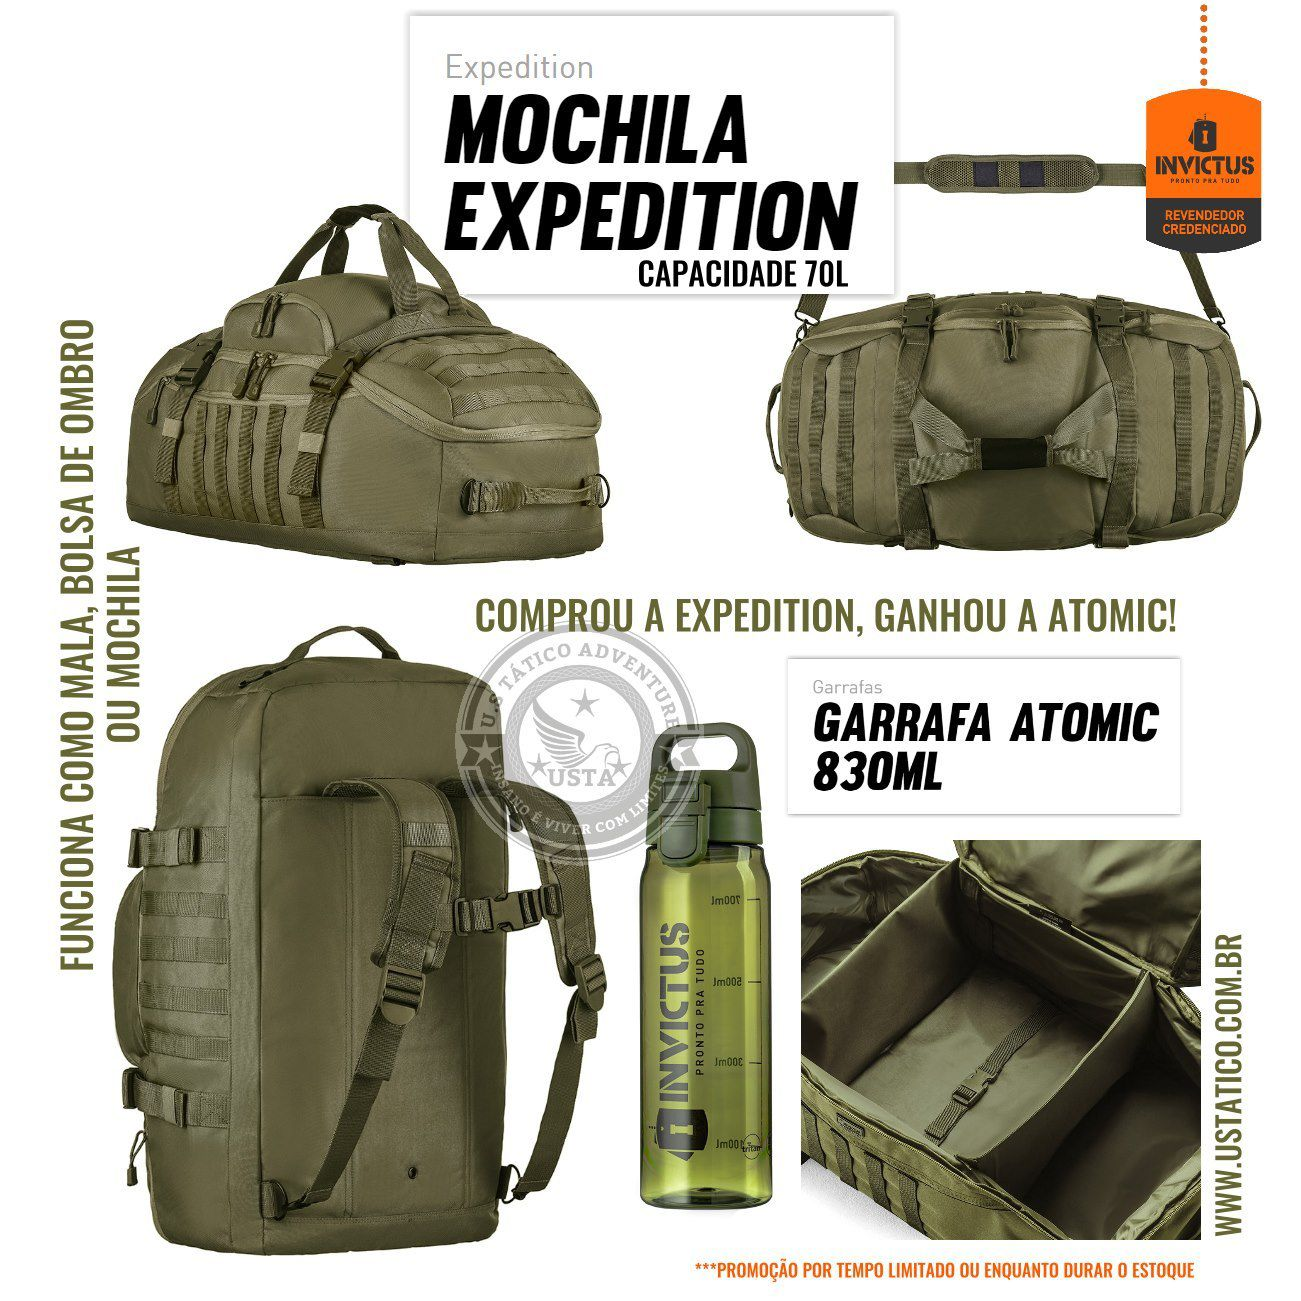 Mochila / Mala Verde Oliva Expedition 70l Invictus